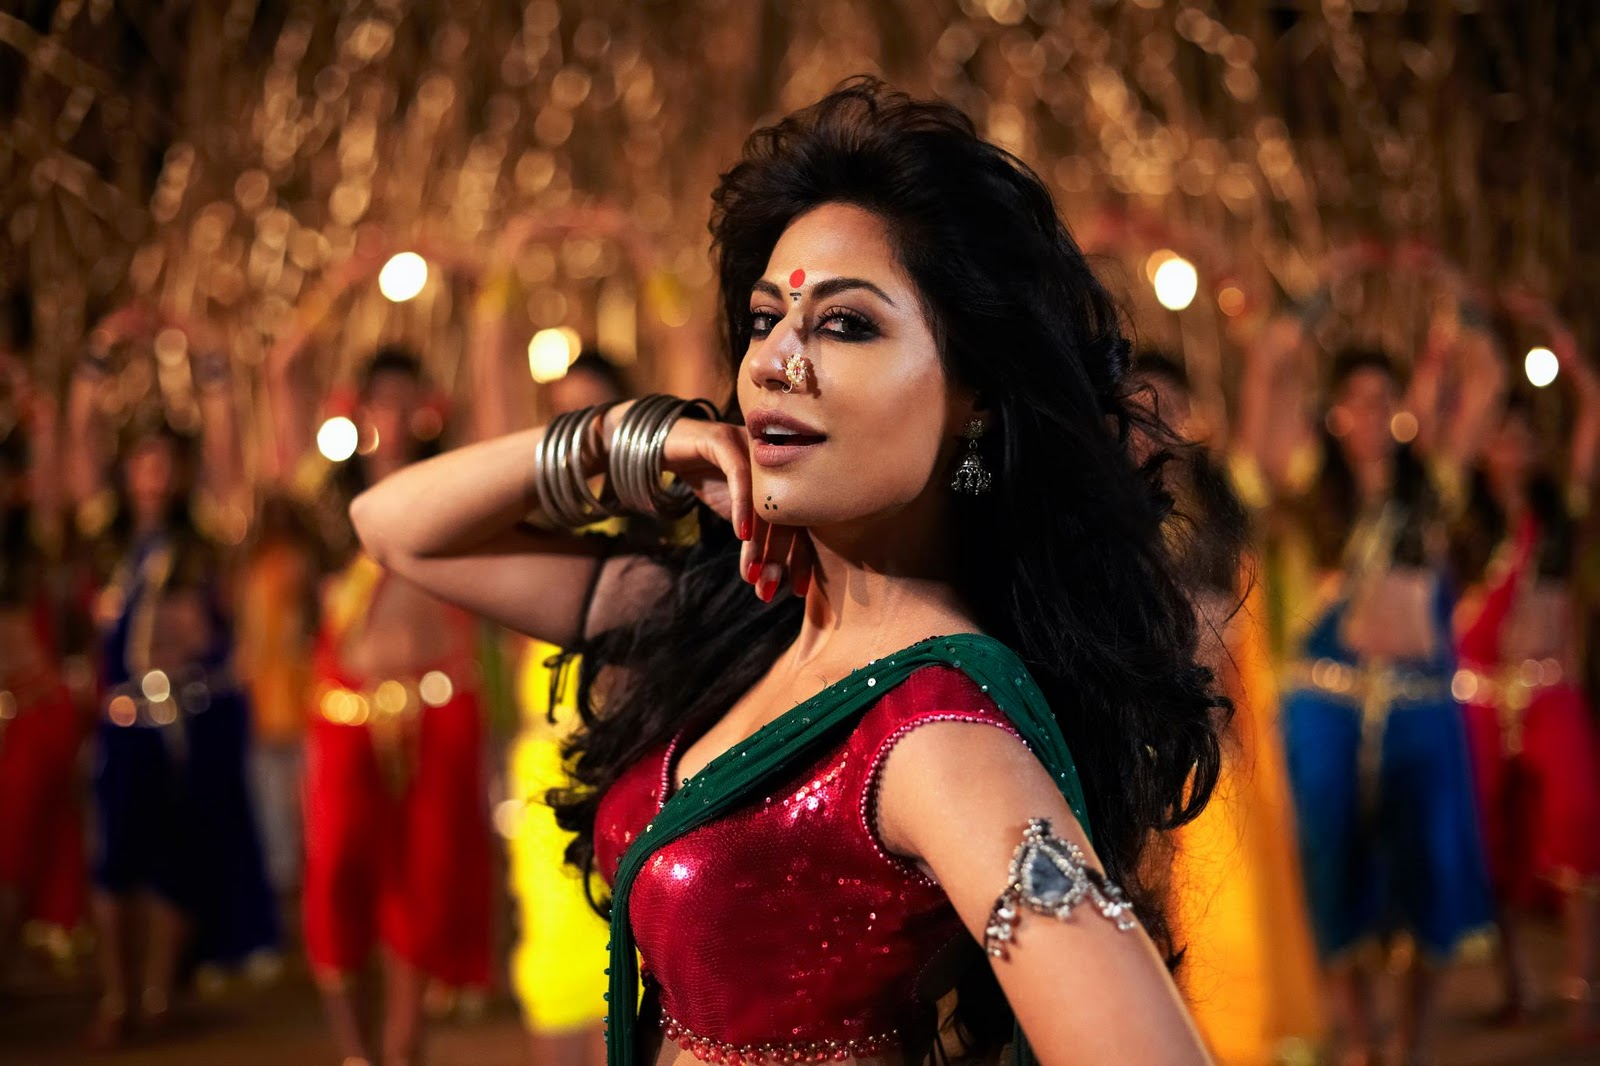 new punjabi song video download in hd